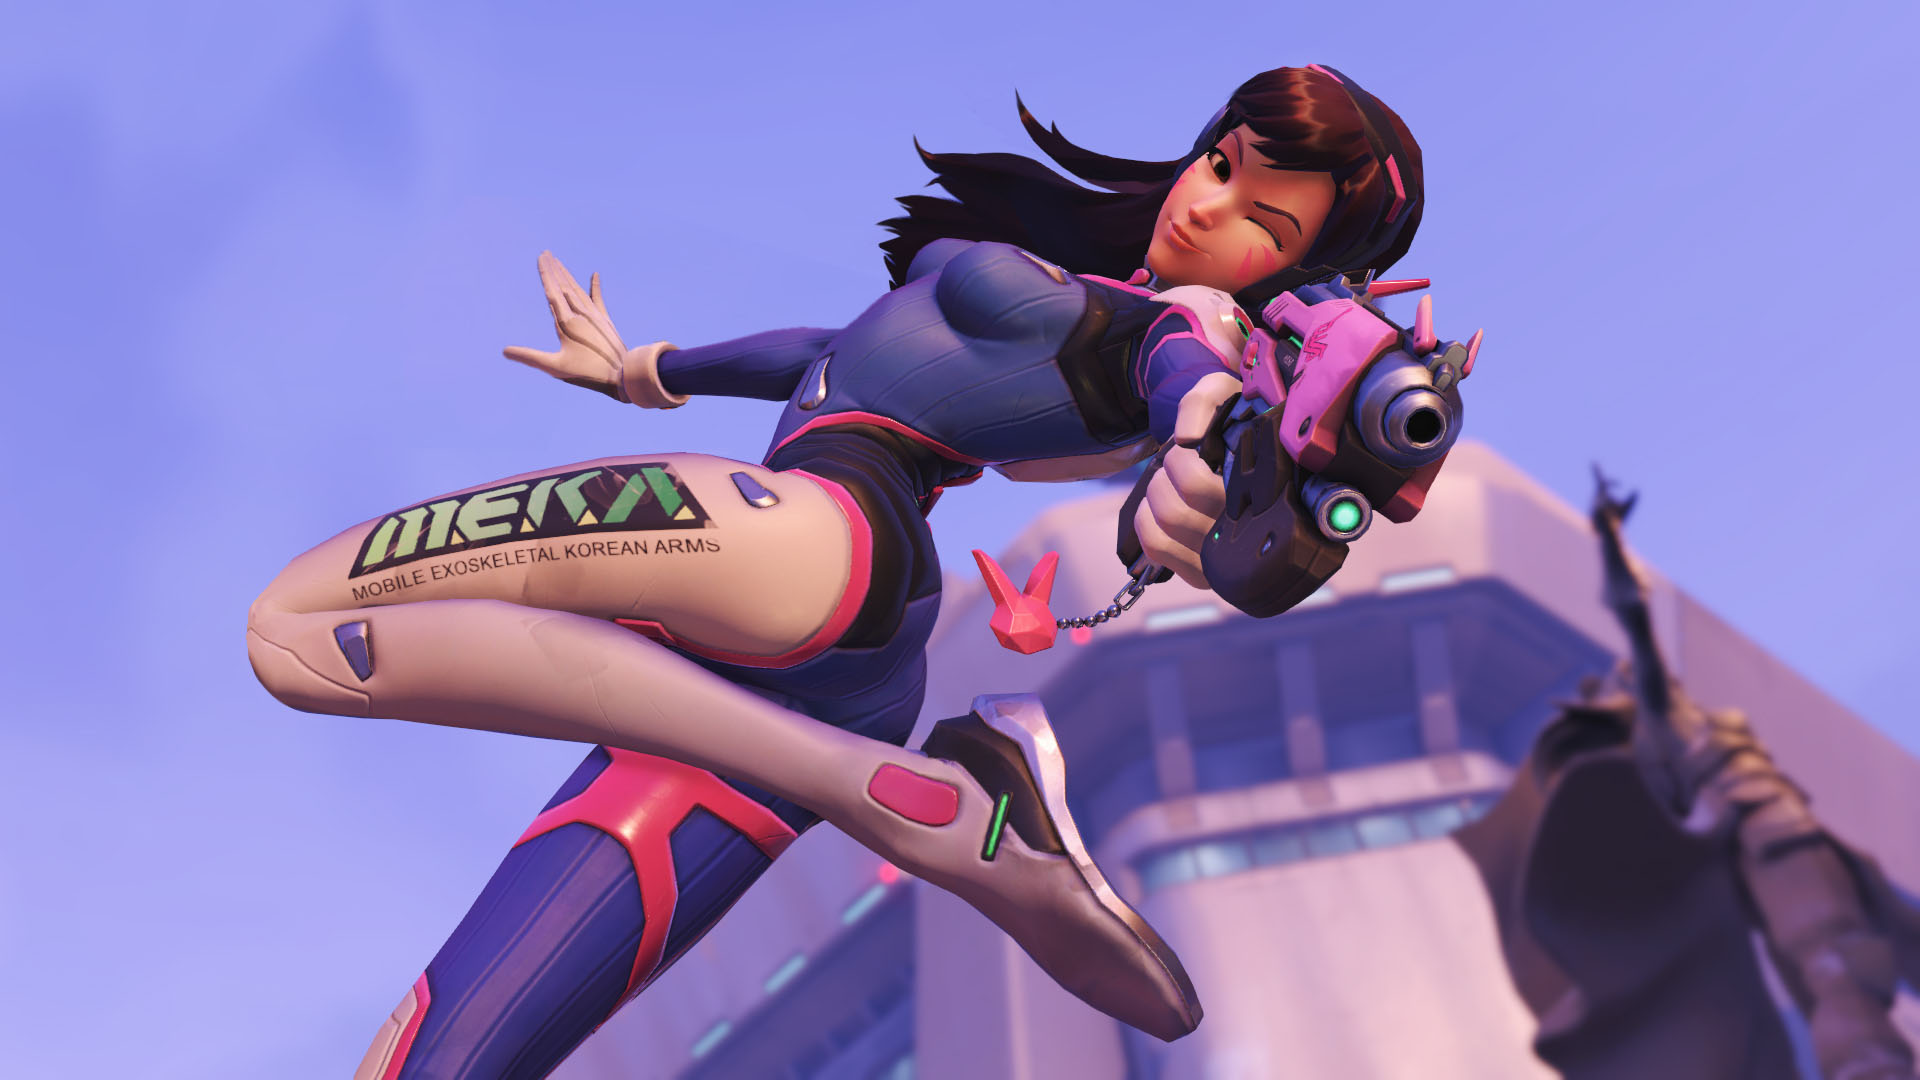 overwatch system requirements - Free Game Cheats